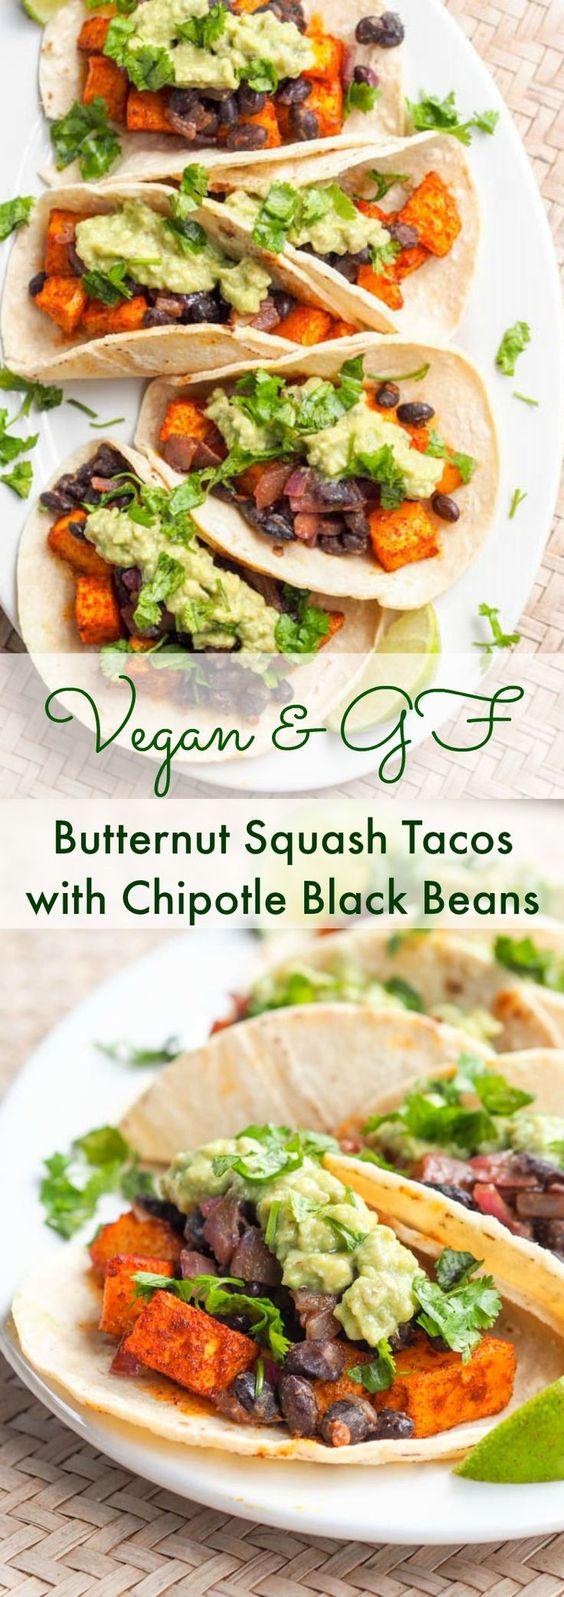 Vegan Butternut Squash Tacos with Chipotle Black Beans (GF ...